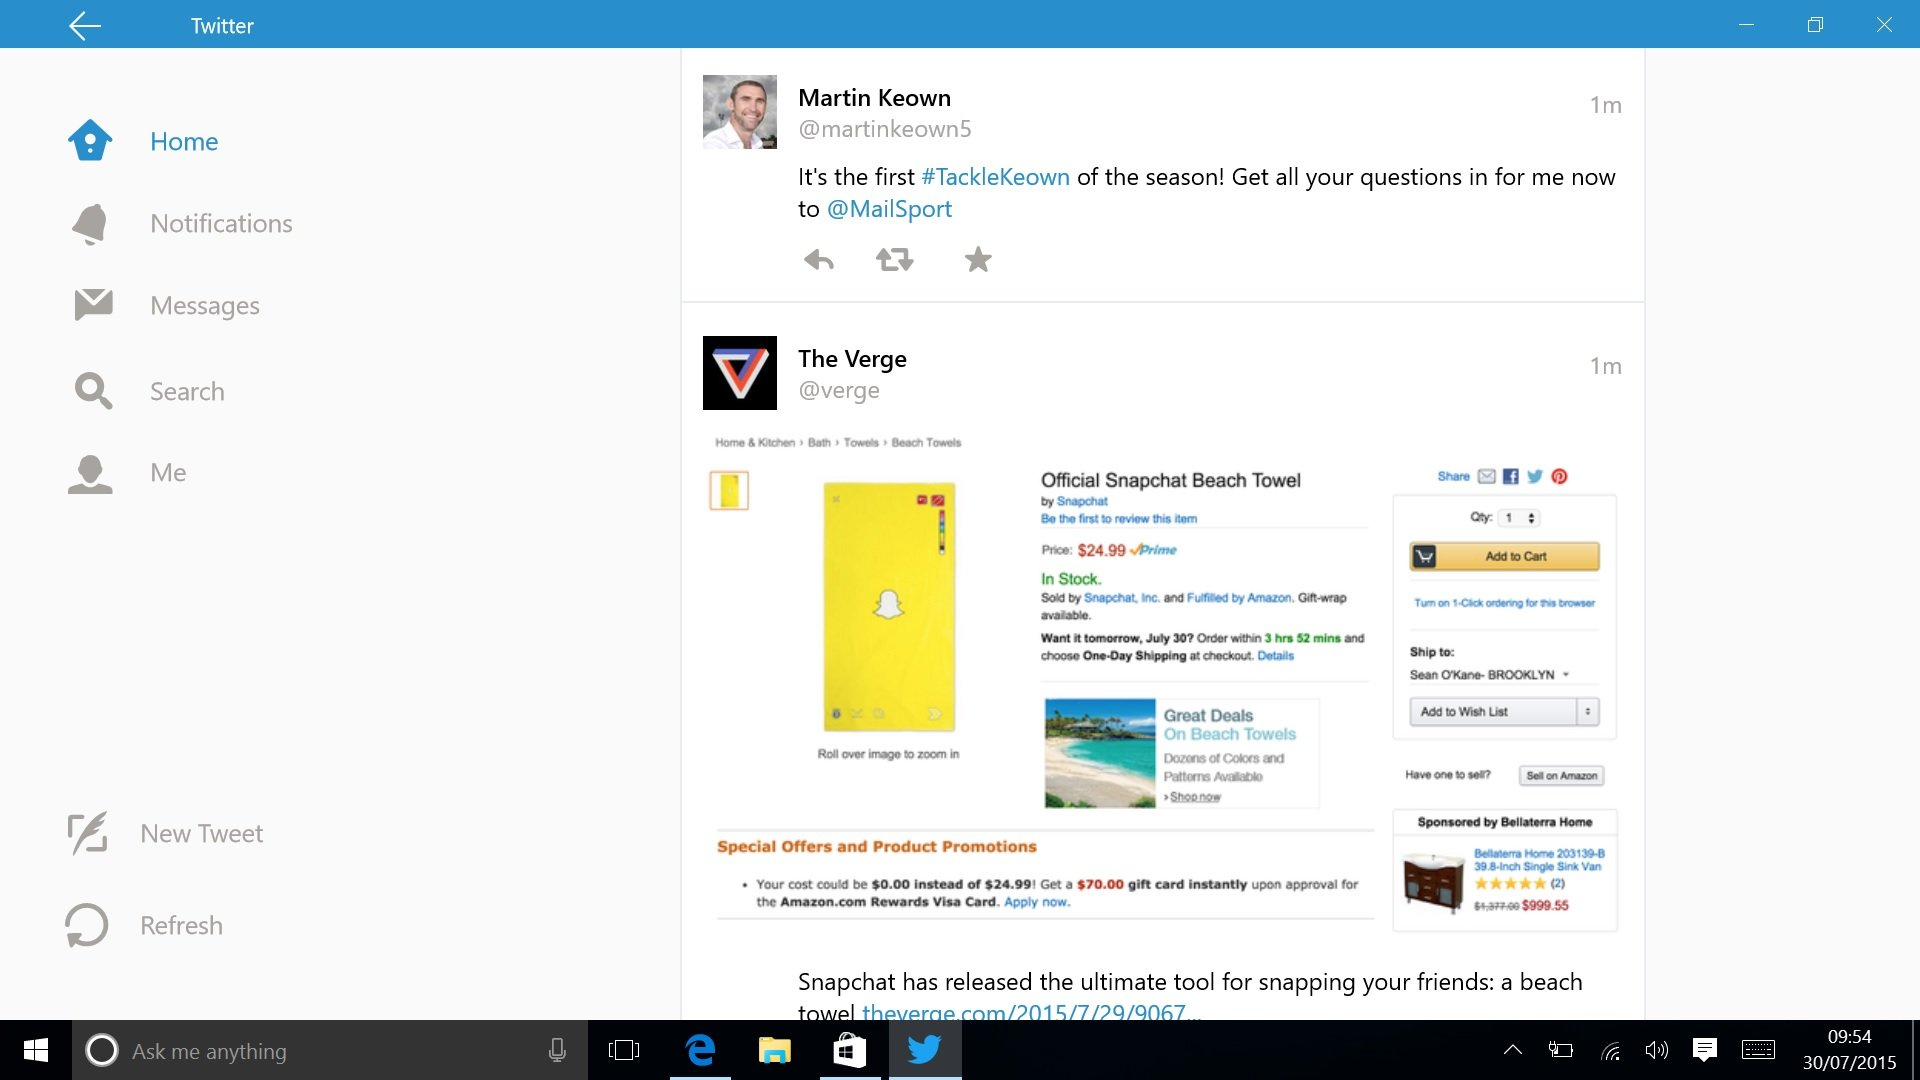 At last! Twitter gets a Windows app update | Expert Reviews